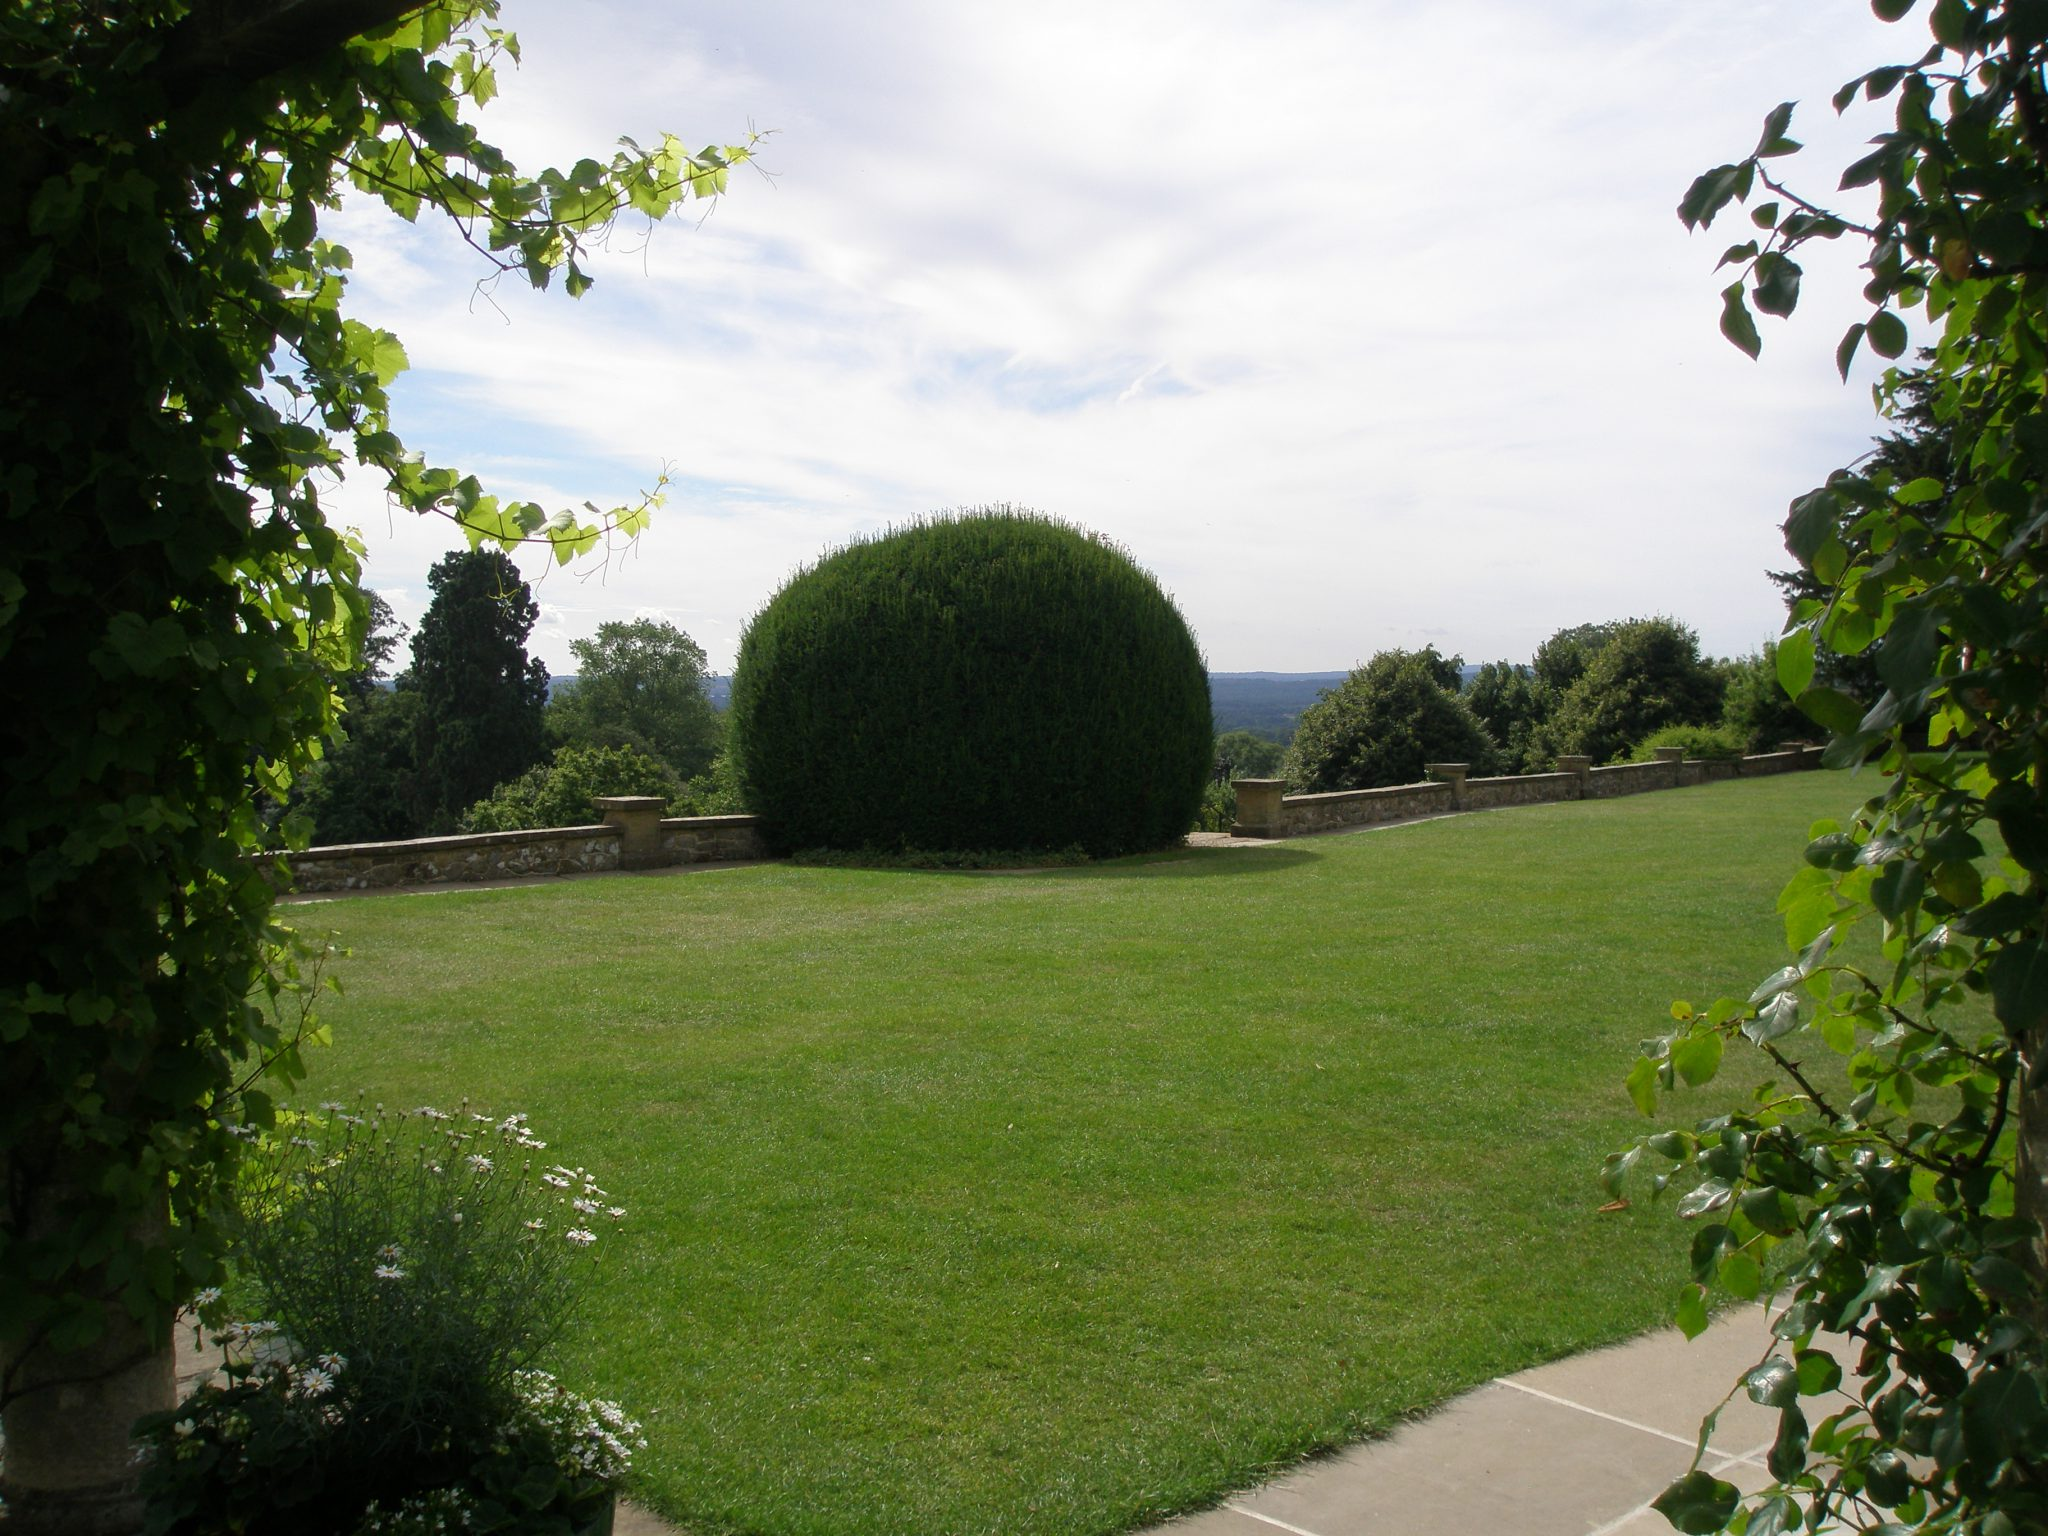 Just south of the Pergola and Marlborough Pavilion is the Terrace Lawn. From this lawn one can enjoy the long view south, over the Weald of Kent. Churchill bought the House for this View.